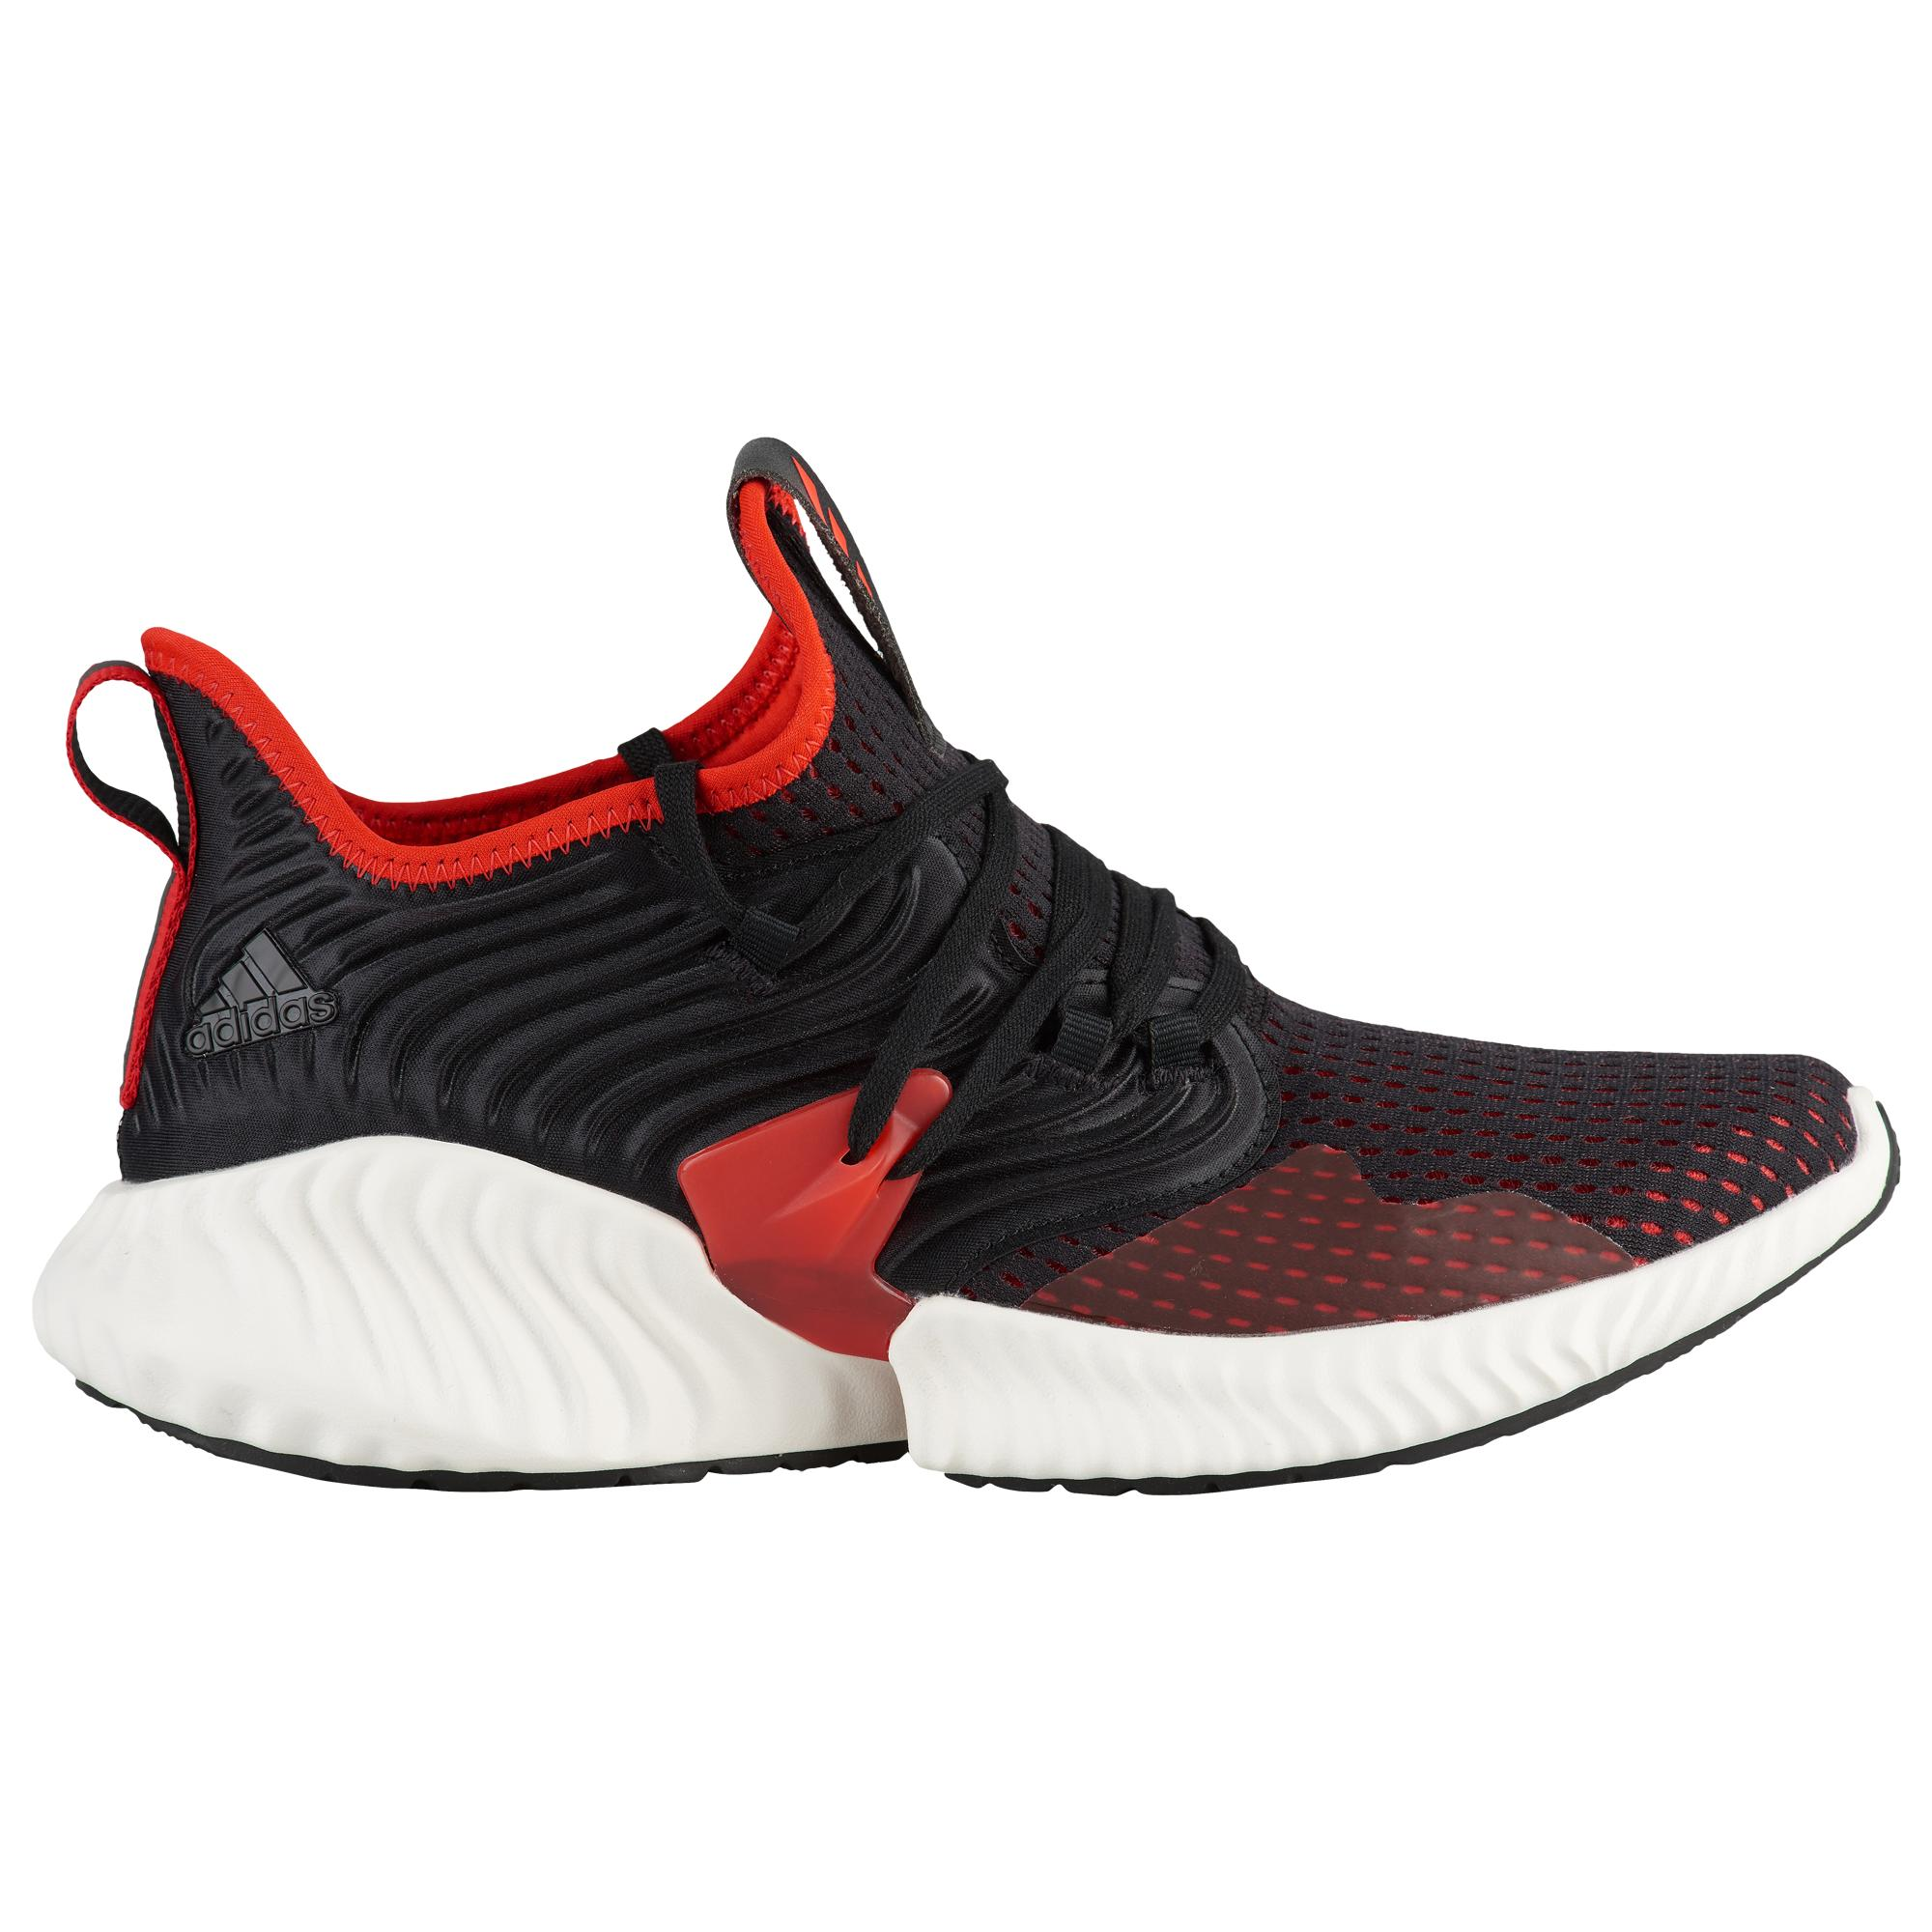 ADIDAS CLIMACOOL 02//17 Ruby Red-White running training fashion sneakers new